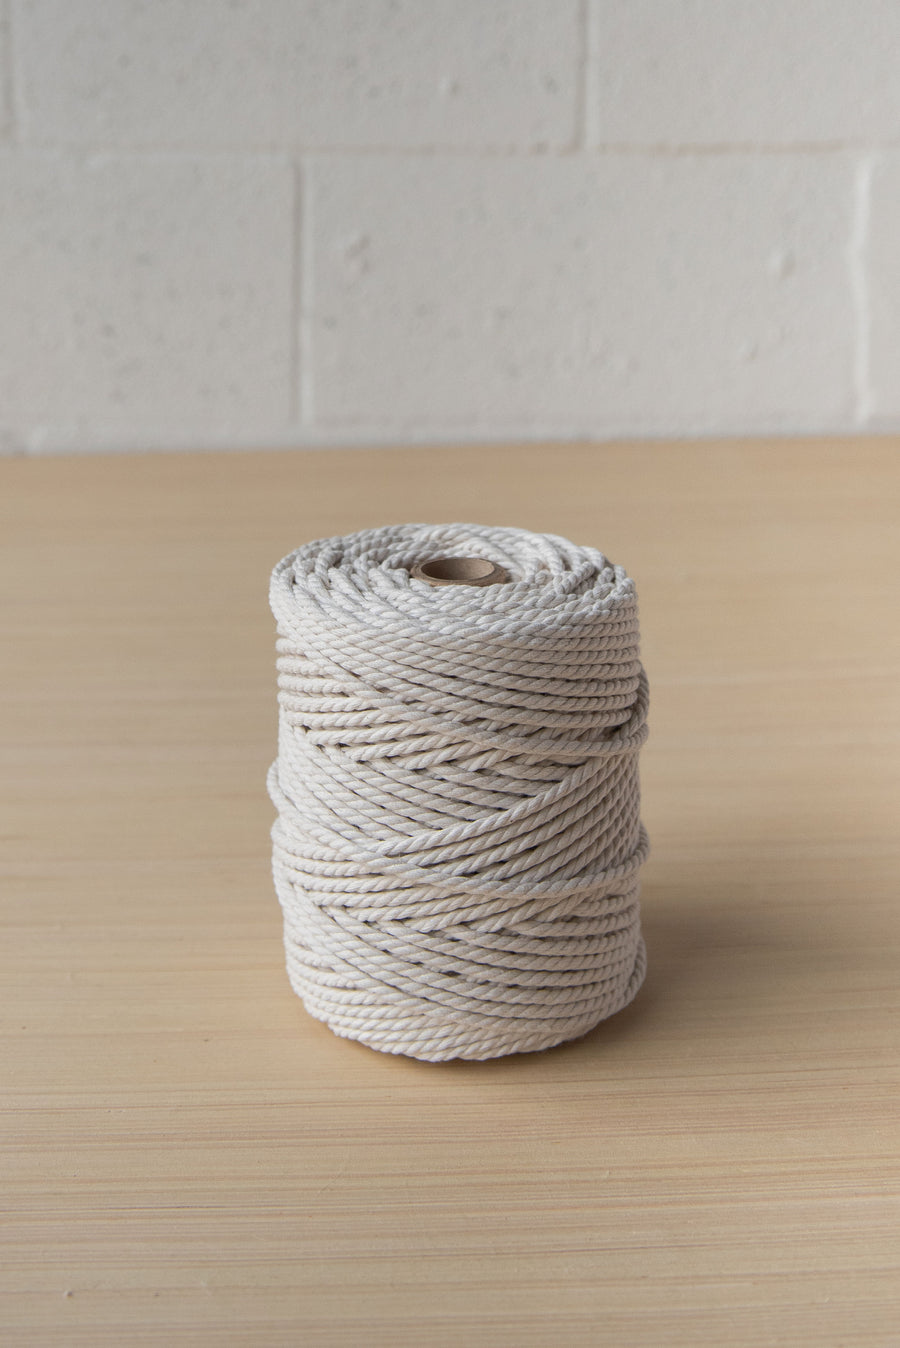 COTTON ROPE ZERO WASTE 3 MM - 3 PLY - NATURAL COLOR